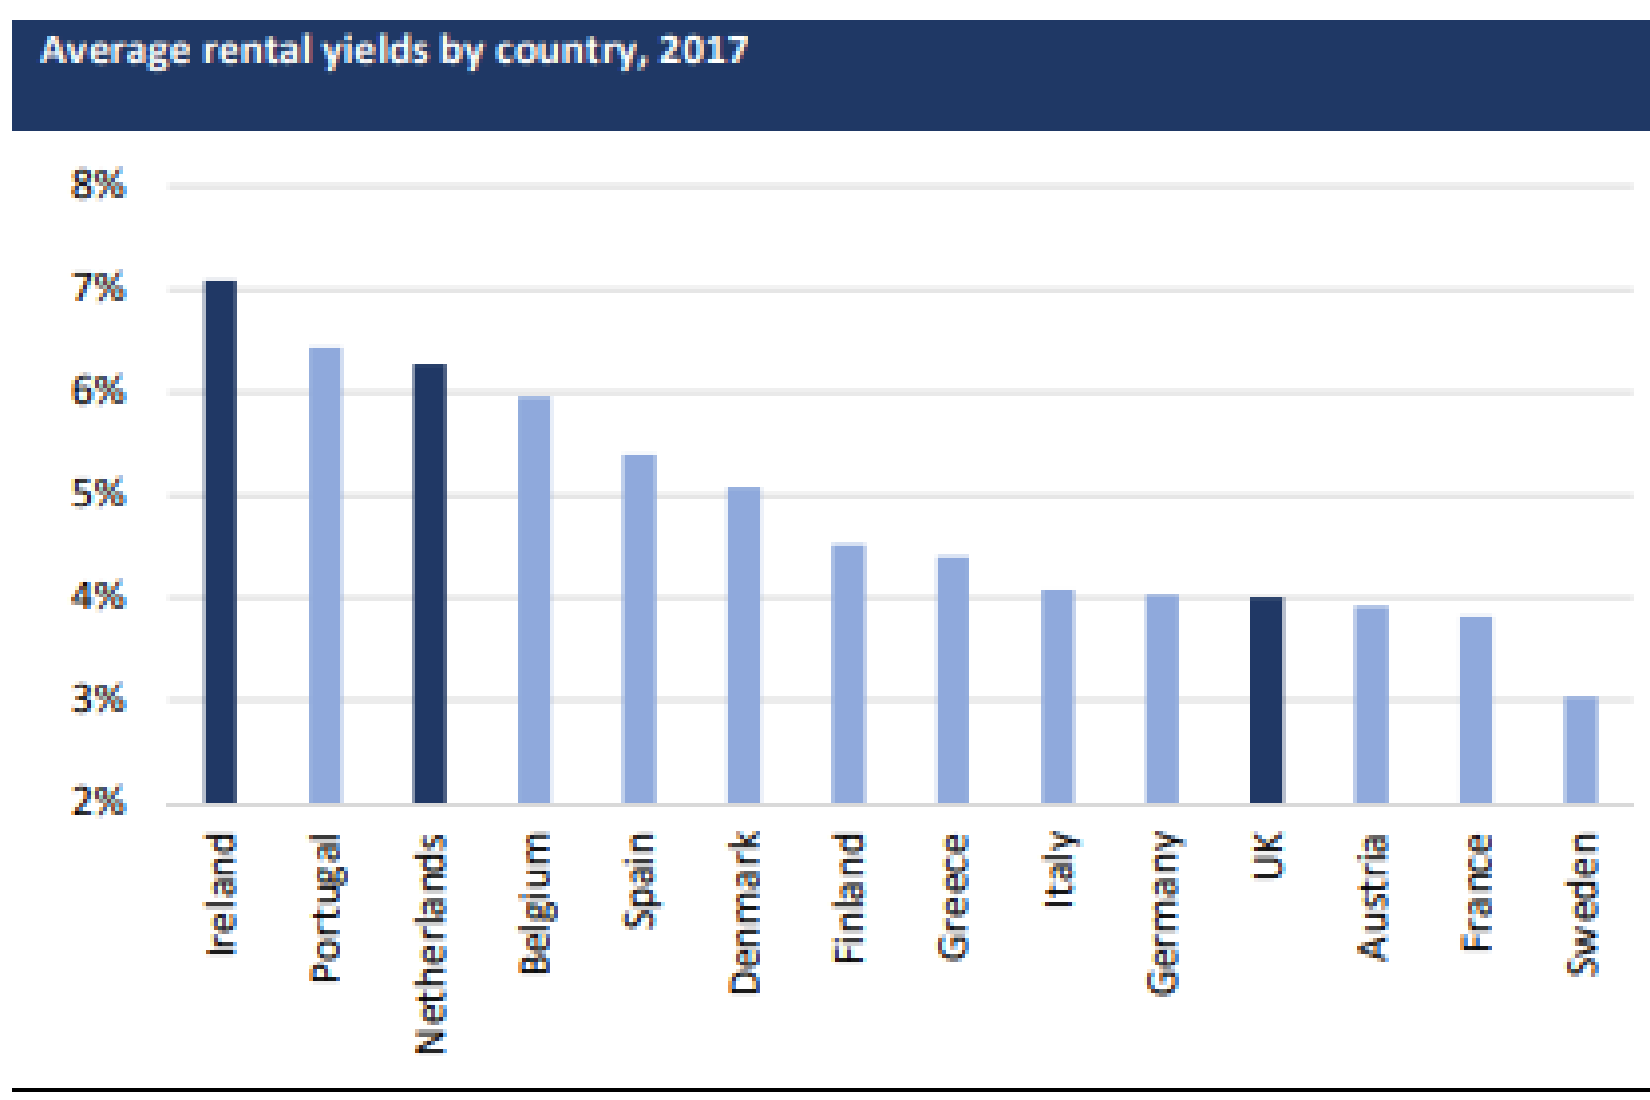 Source: WorldFirst 2017. Note current yields may be different given the extent of house and rent price changes in the past year